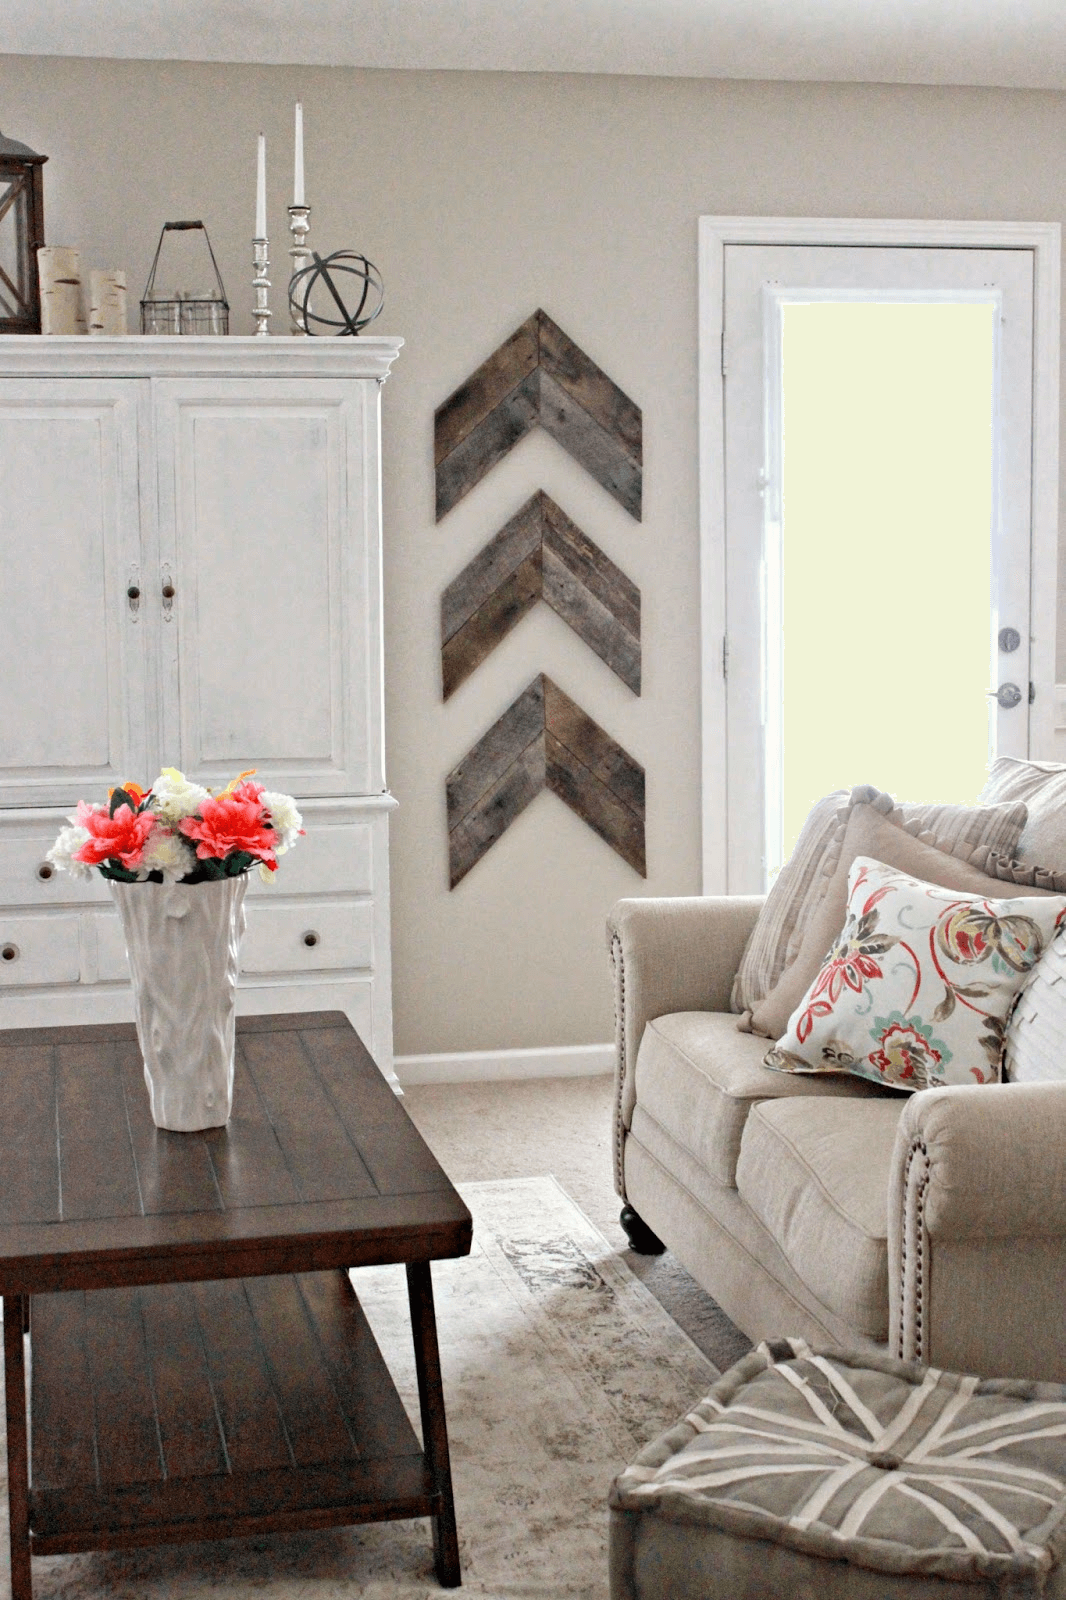 Chevron Wooden Wall Farmhouse Living room Decor ideas